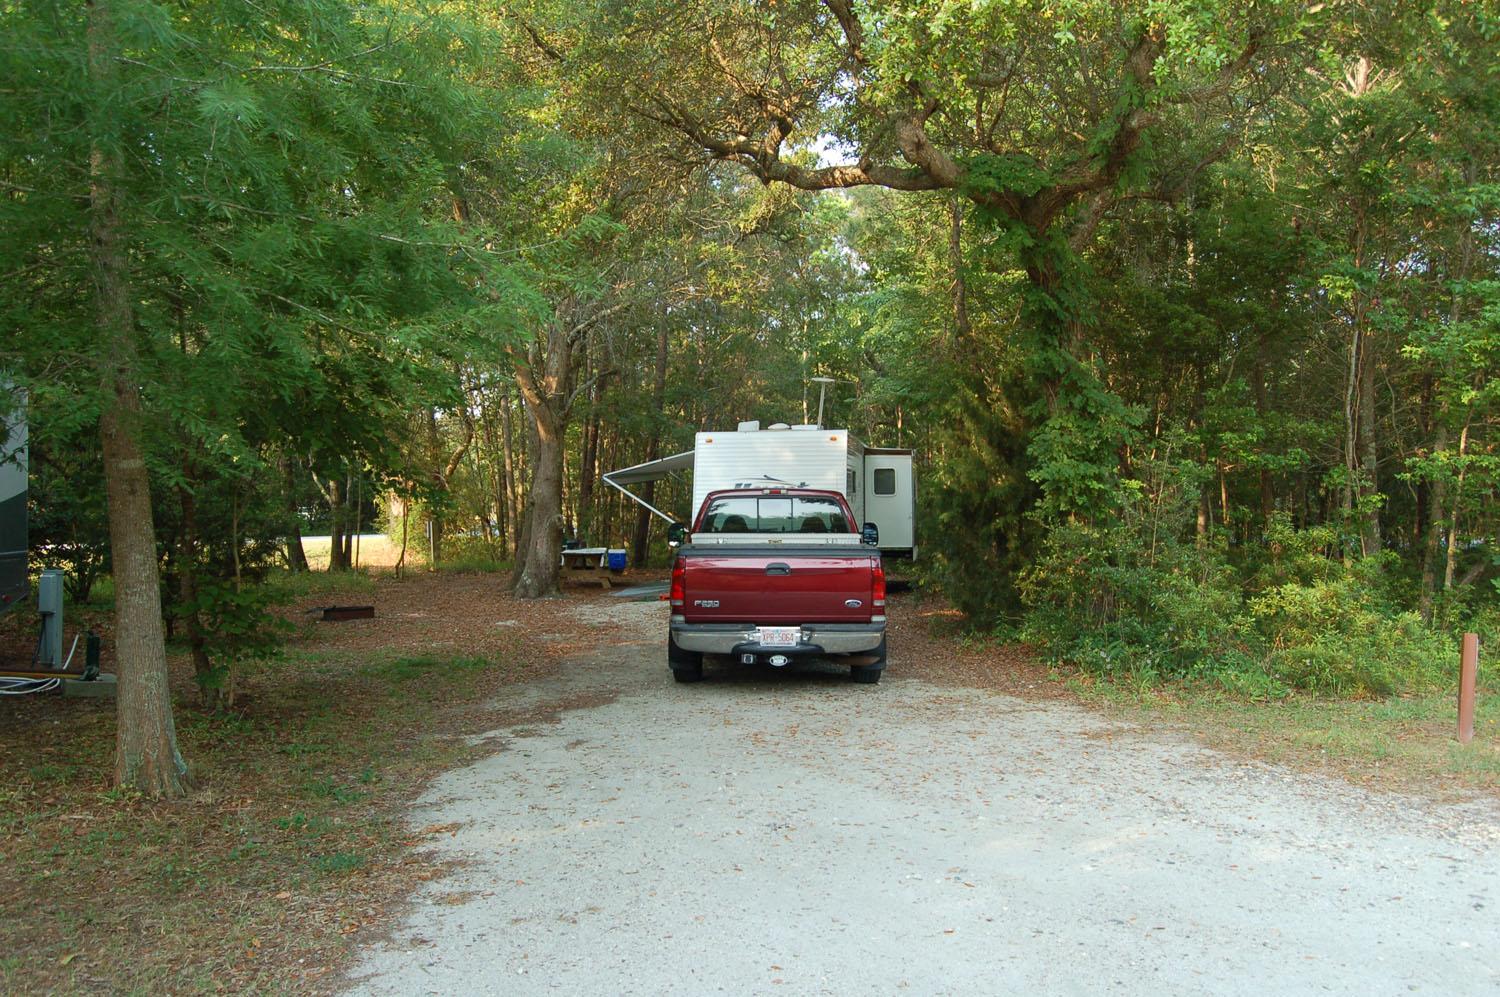 Image of campsite #64 at the Campground at James Island County Park